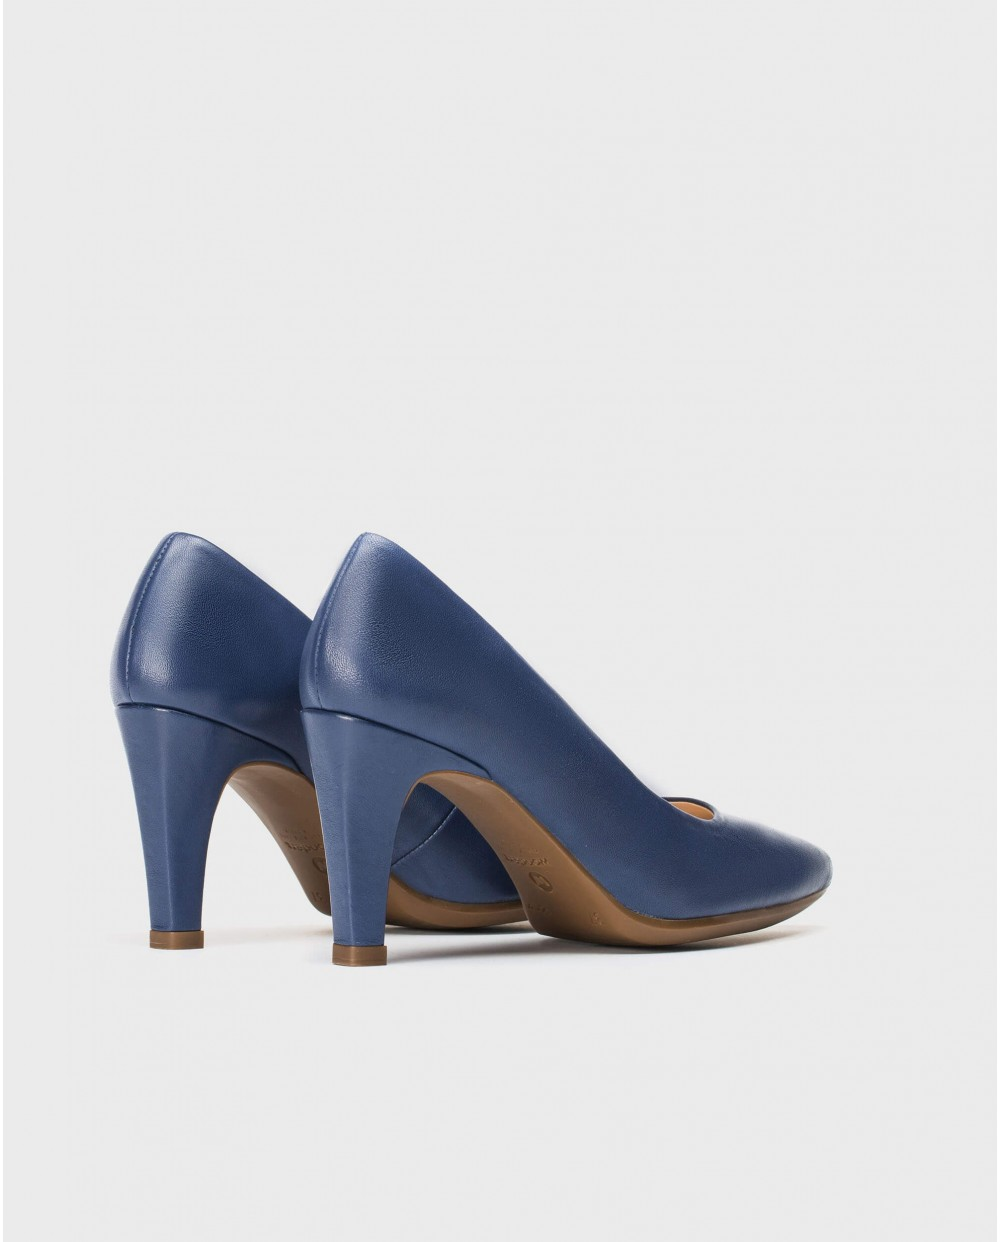 Wonders-Heels-High heeled shoes